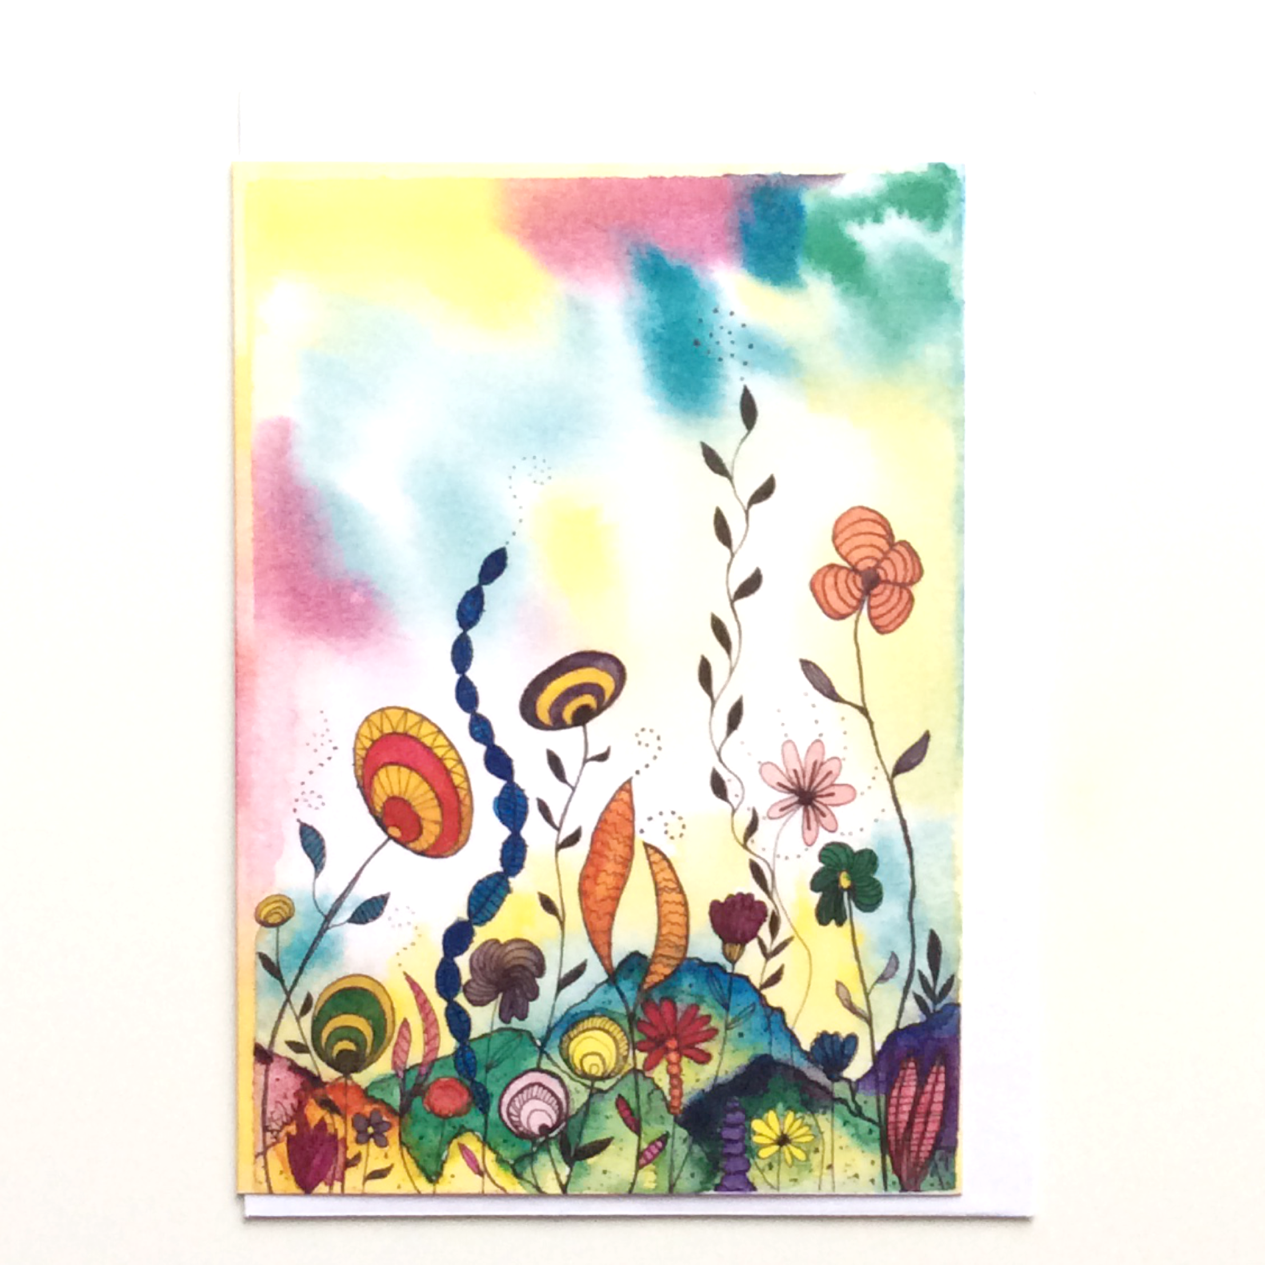 Sub-Aquatic 2 Greeting Card by Stacey-Ann Cole